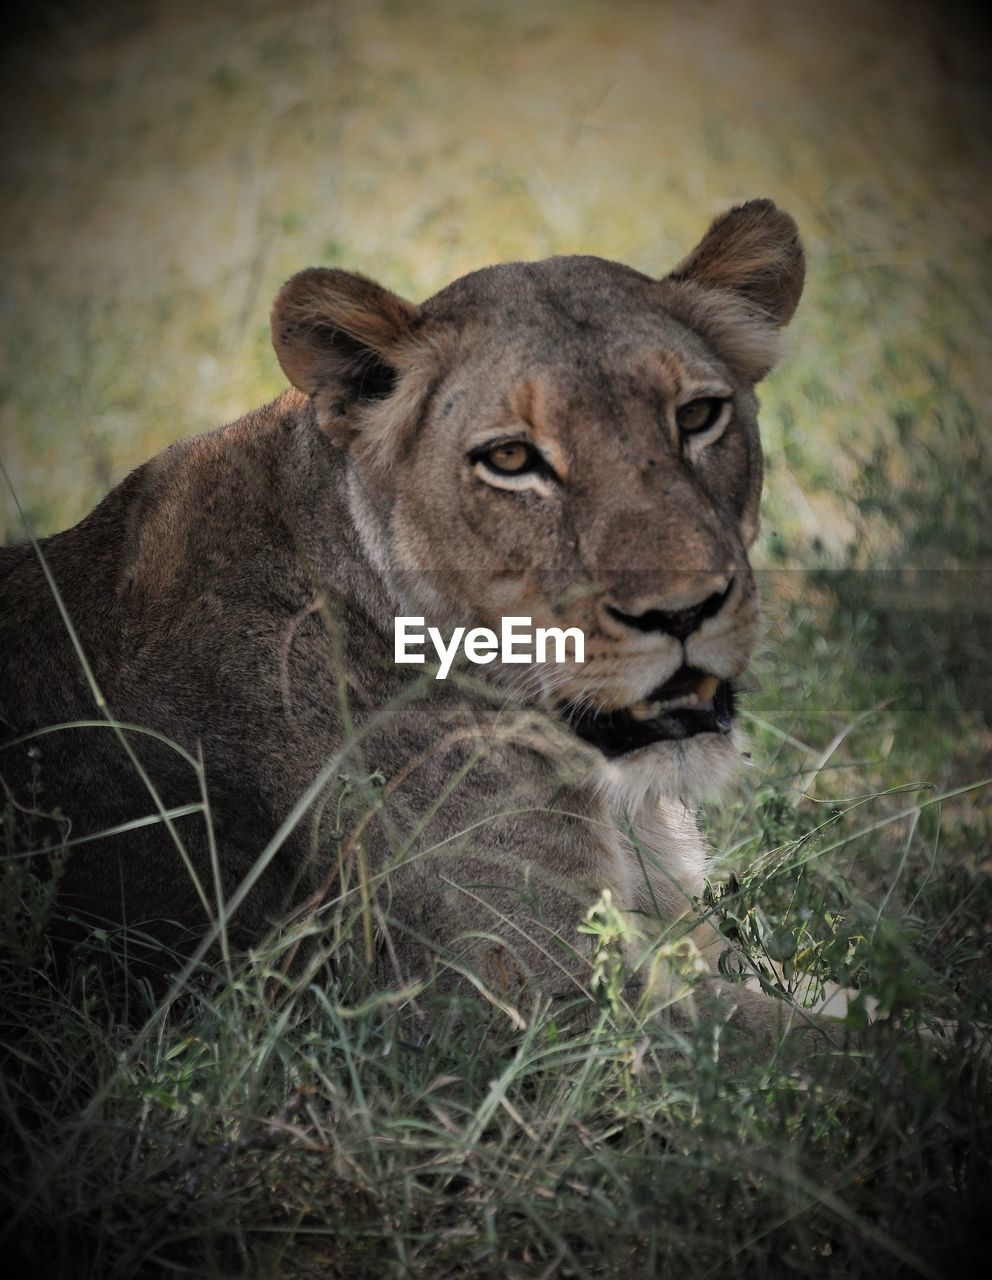 animals in the wild, animal themes, one animal, day, no people, animal wildlife, lioness, outdoors, lion - feline, grass, mammal, safari animals, nature, close-up